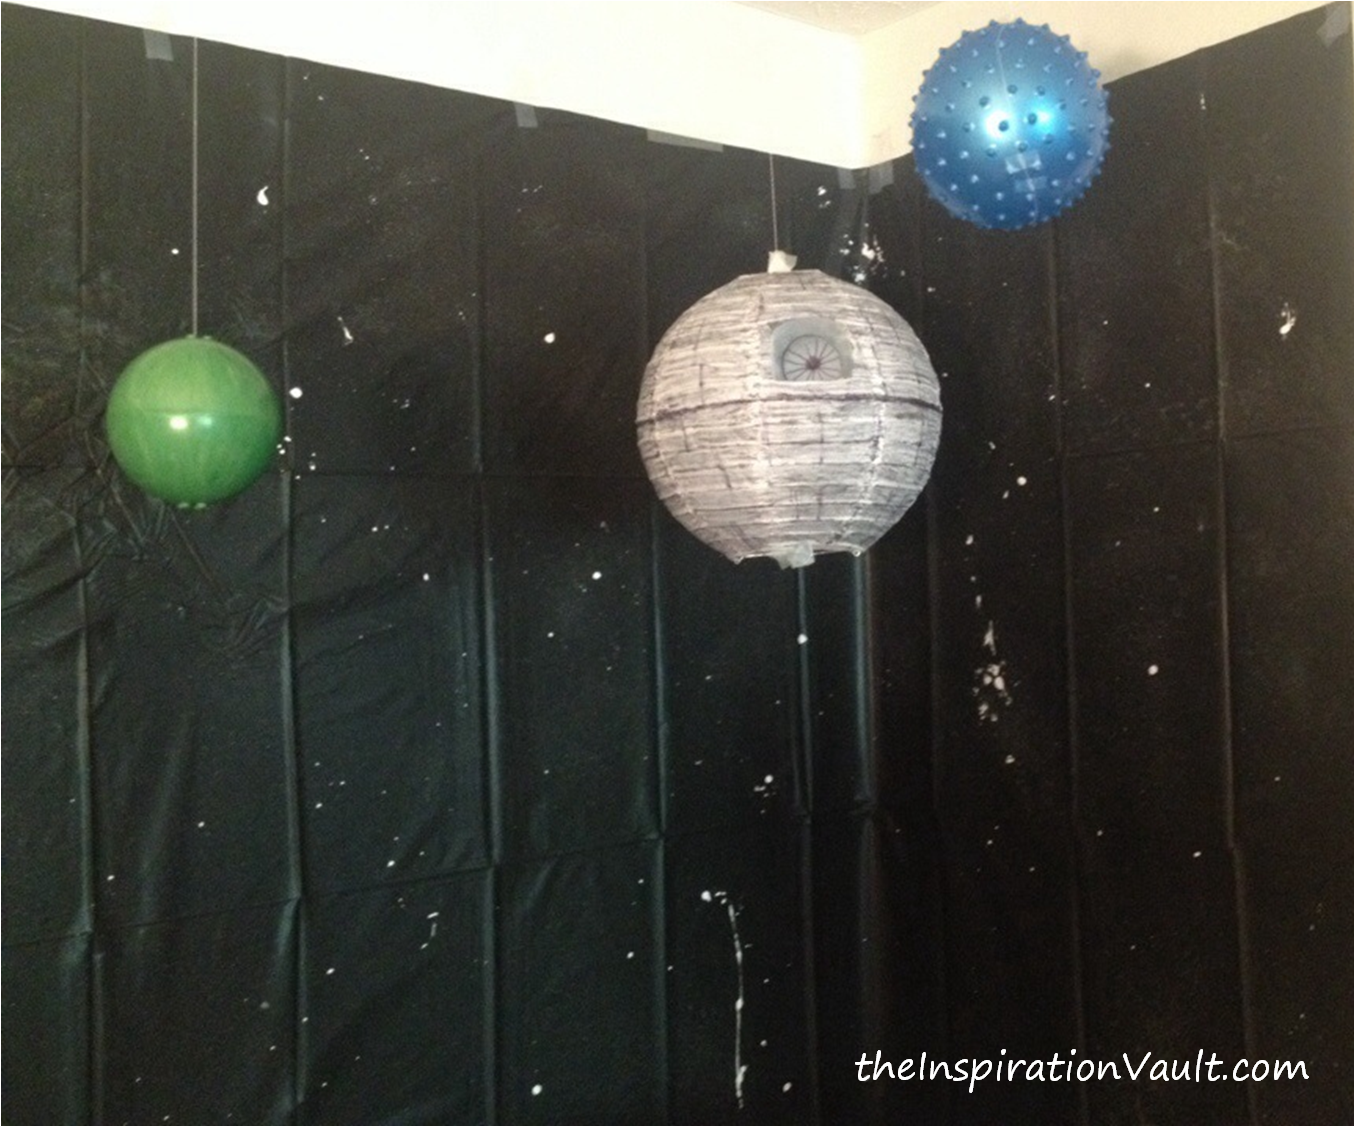 star wars themed diy party decorations - Star Wars Party Decorations